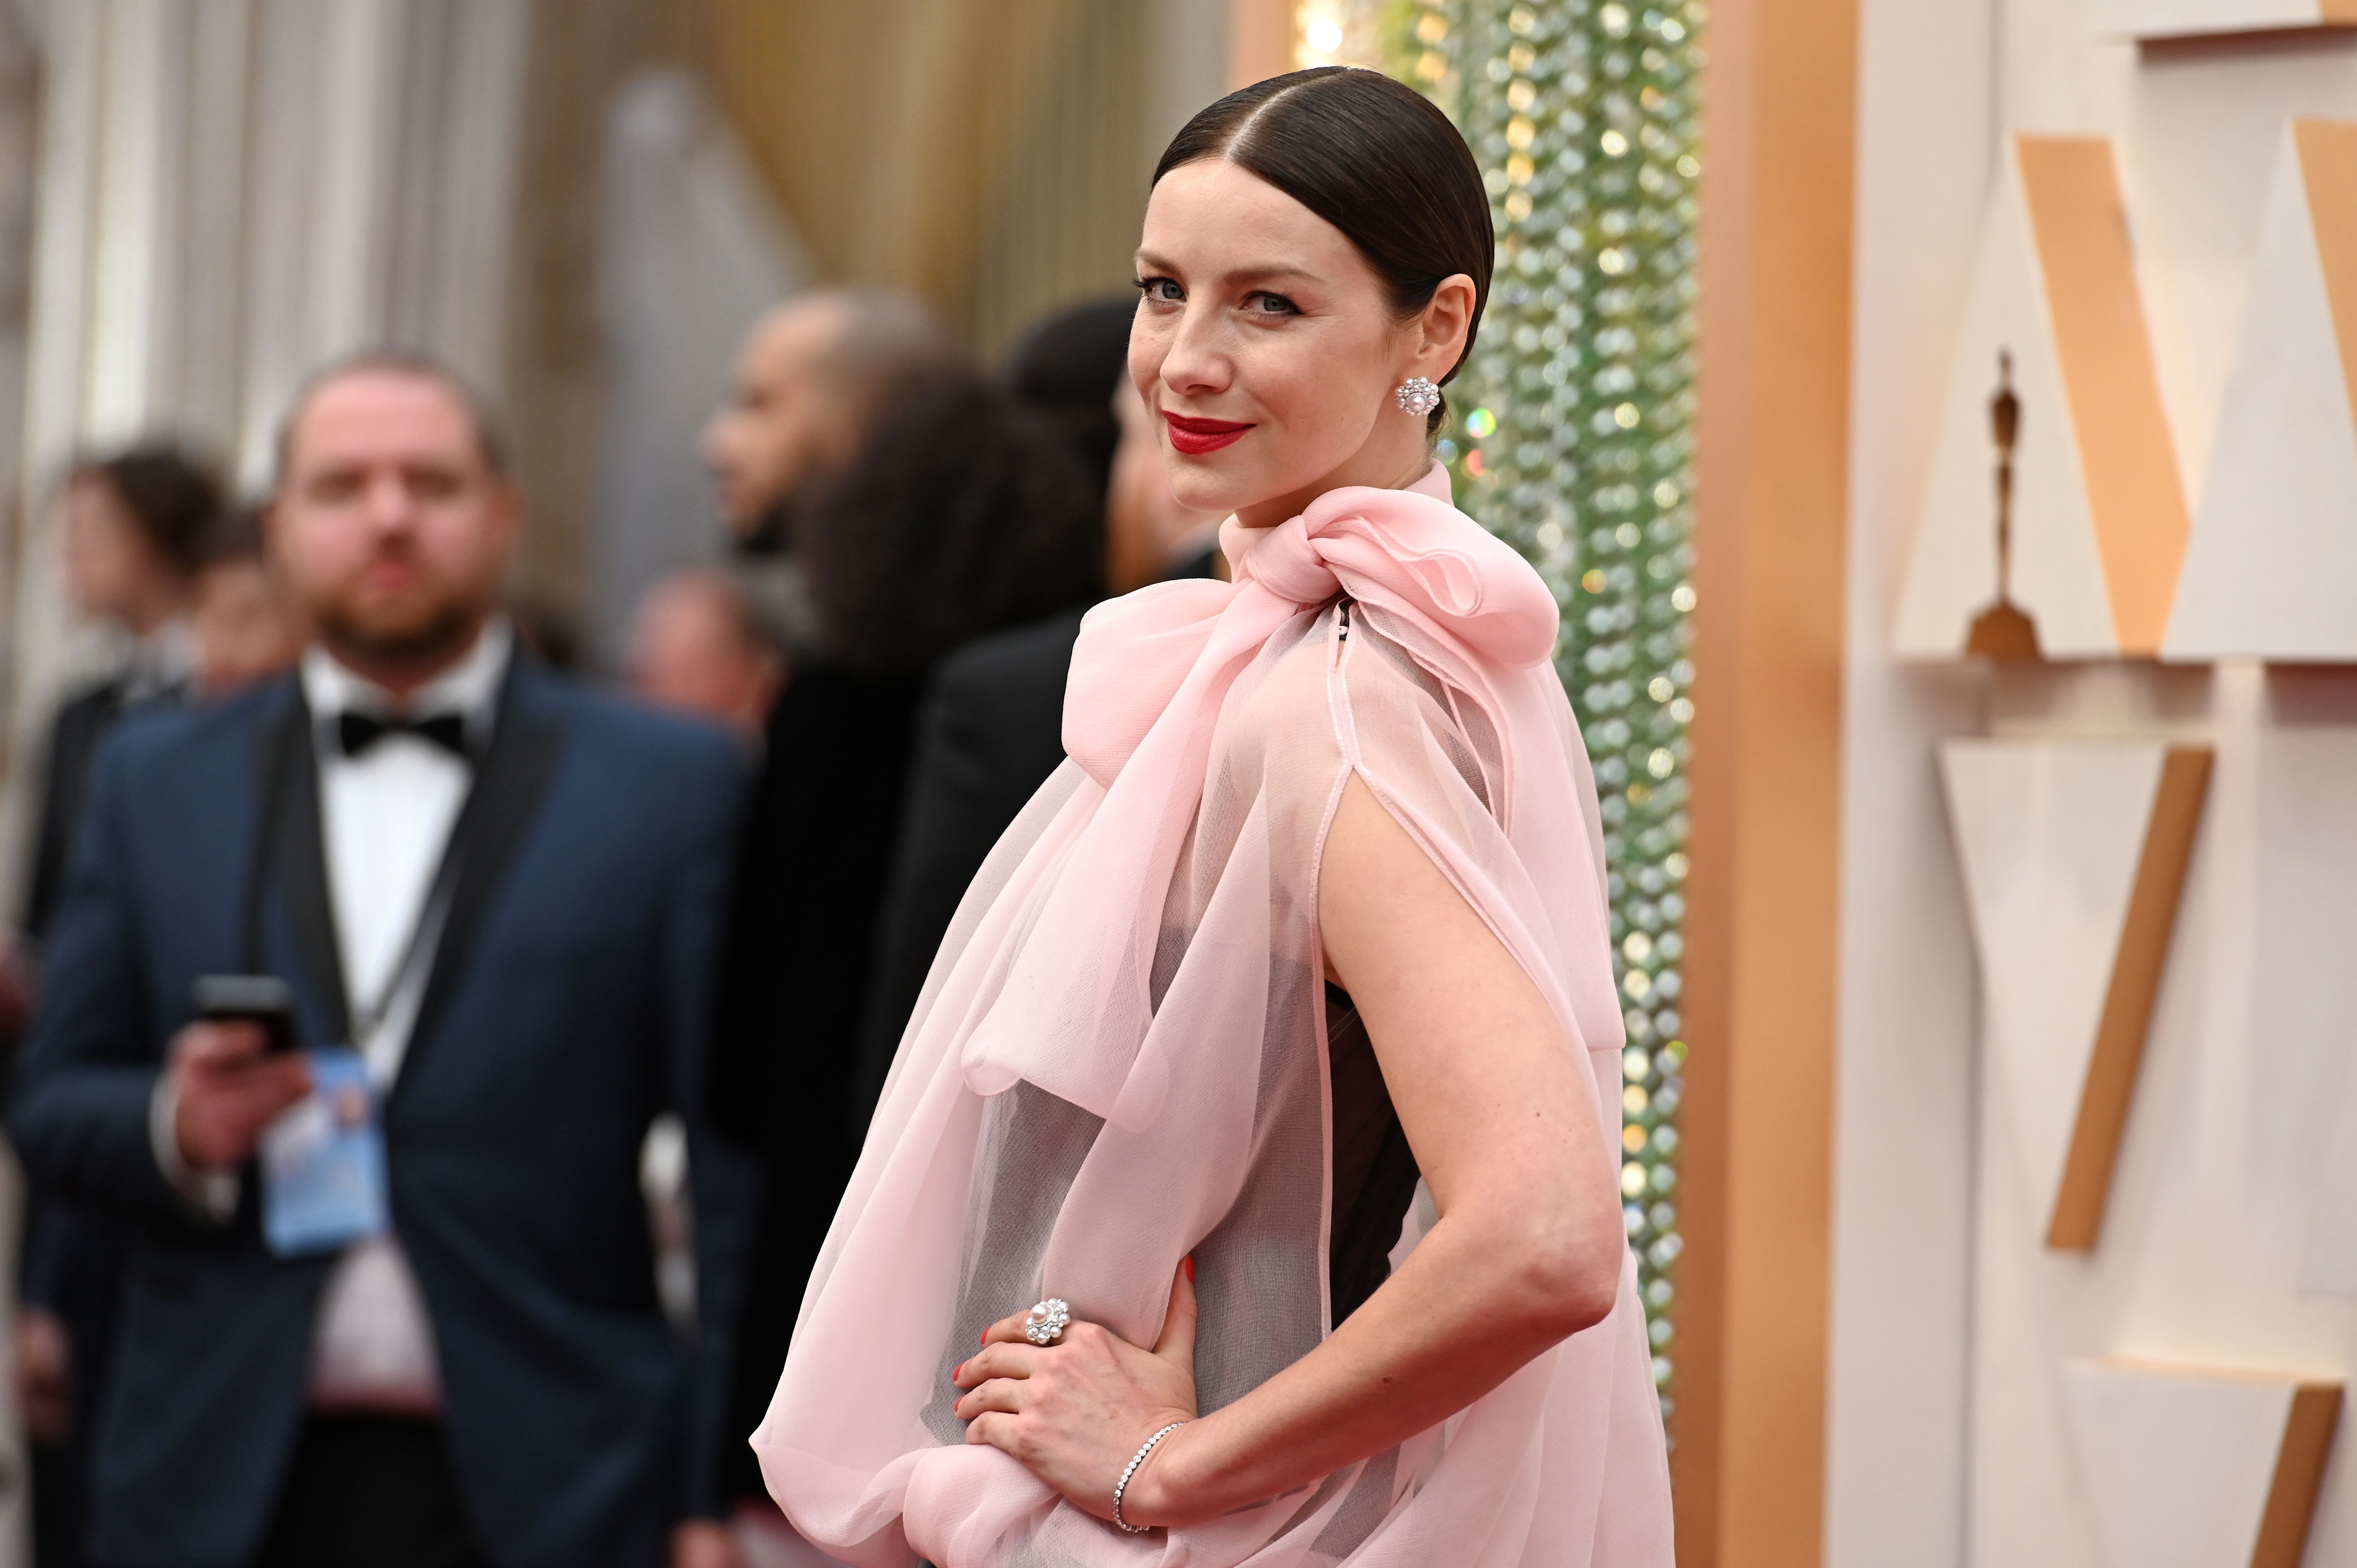 Caitriona Balfe Showed Up to the Oscars Red Carpet Wearing Valentino Haute Couture